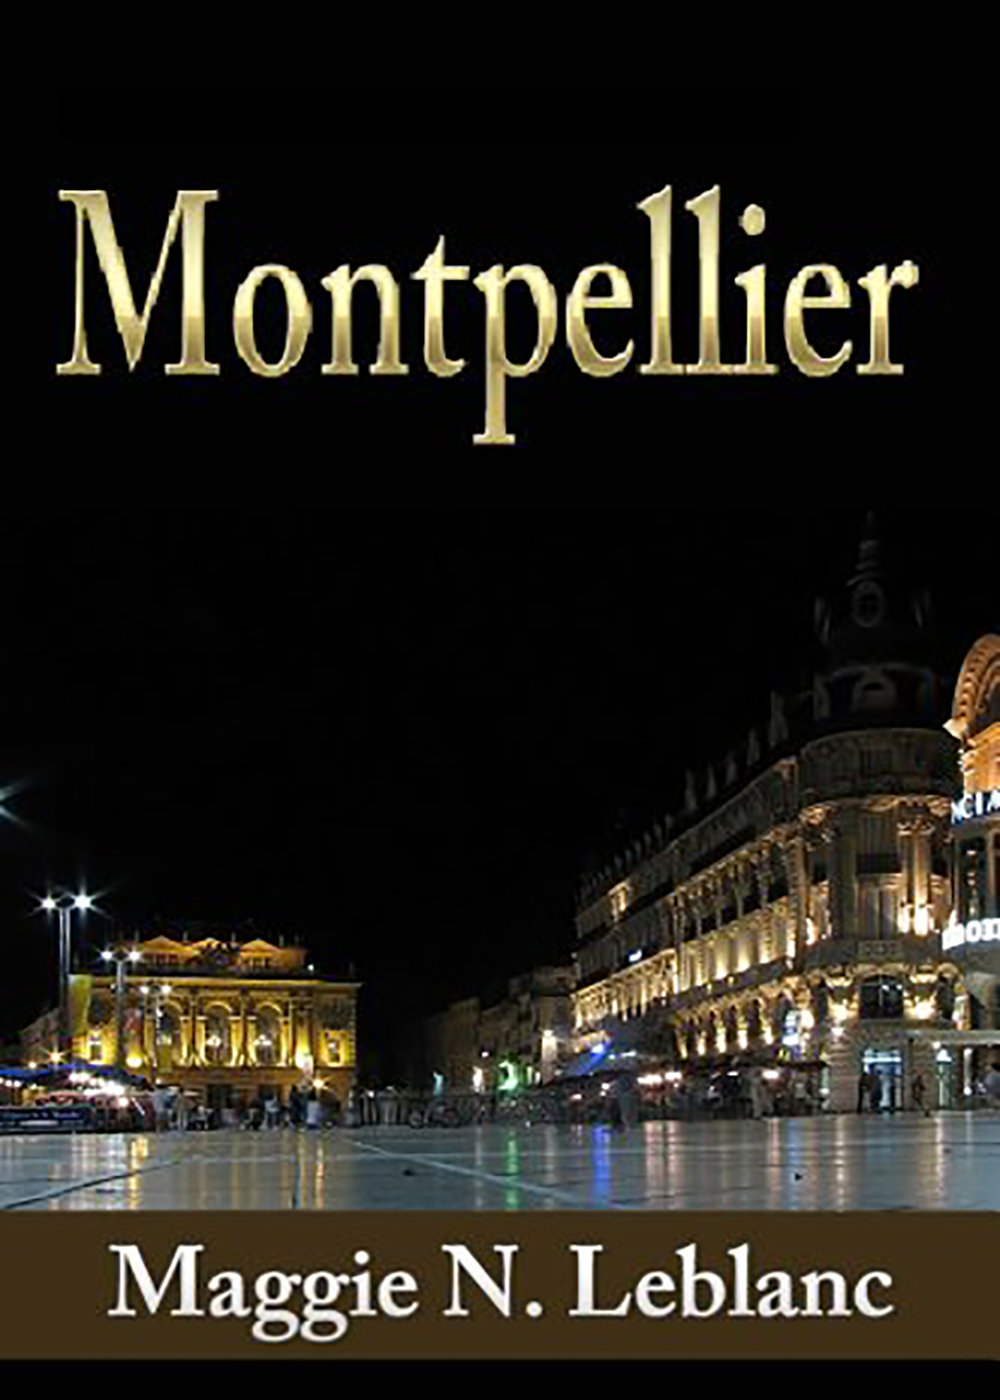 Maggie N. Leblanc - A Jewel In France: Montpellier In Languedoc Roussillon